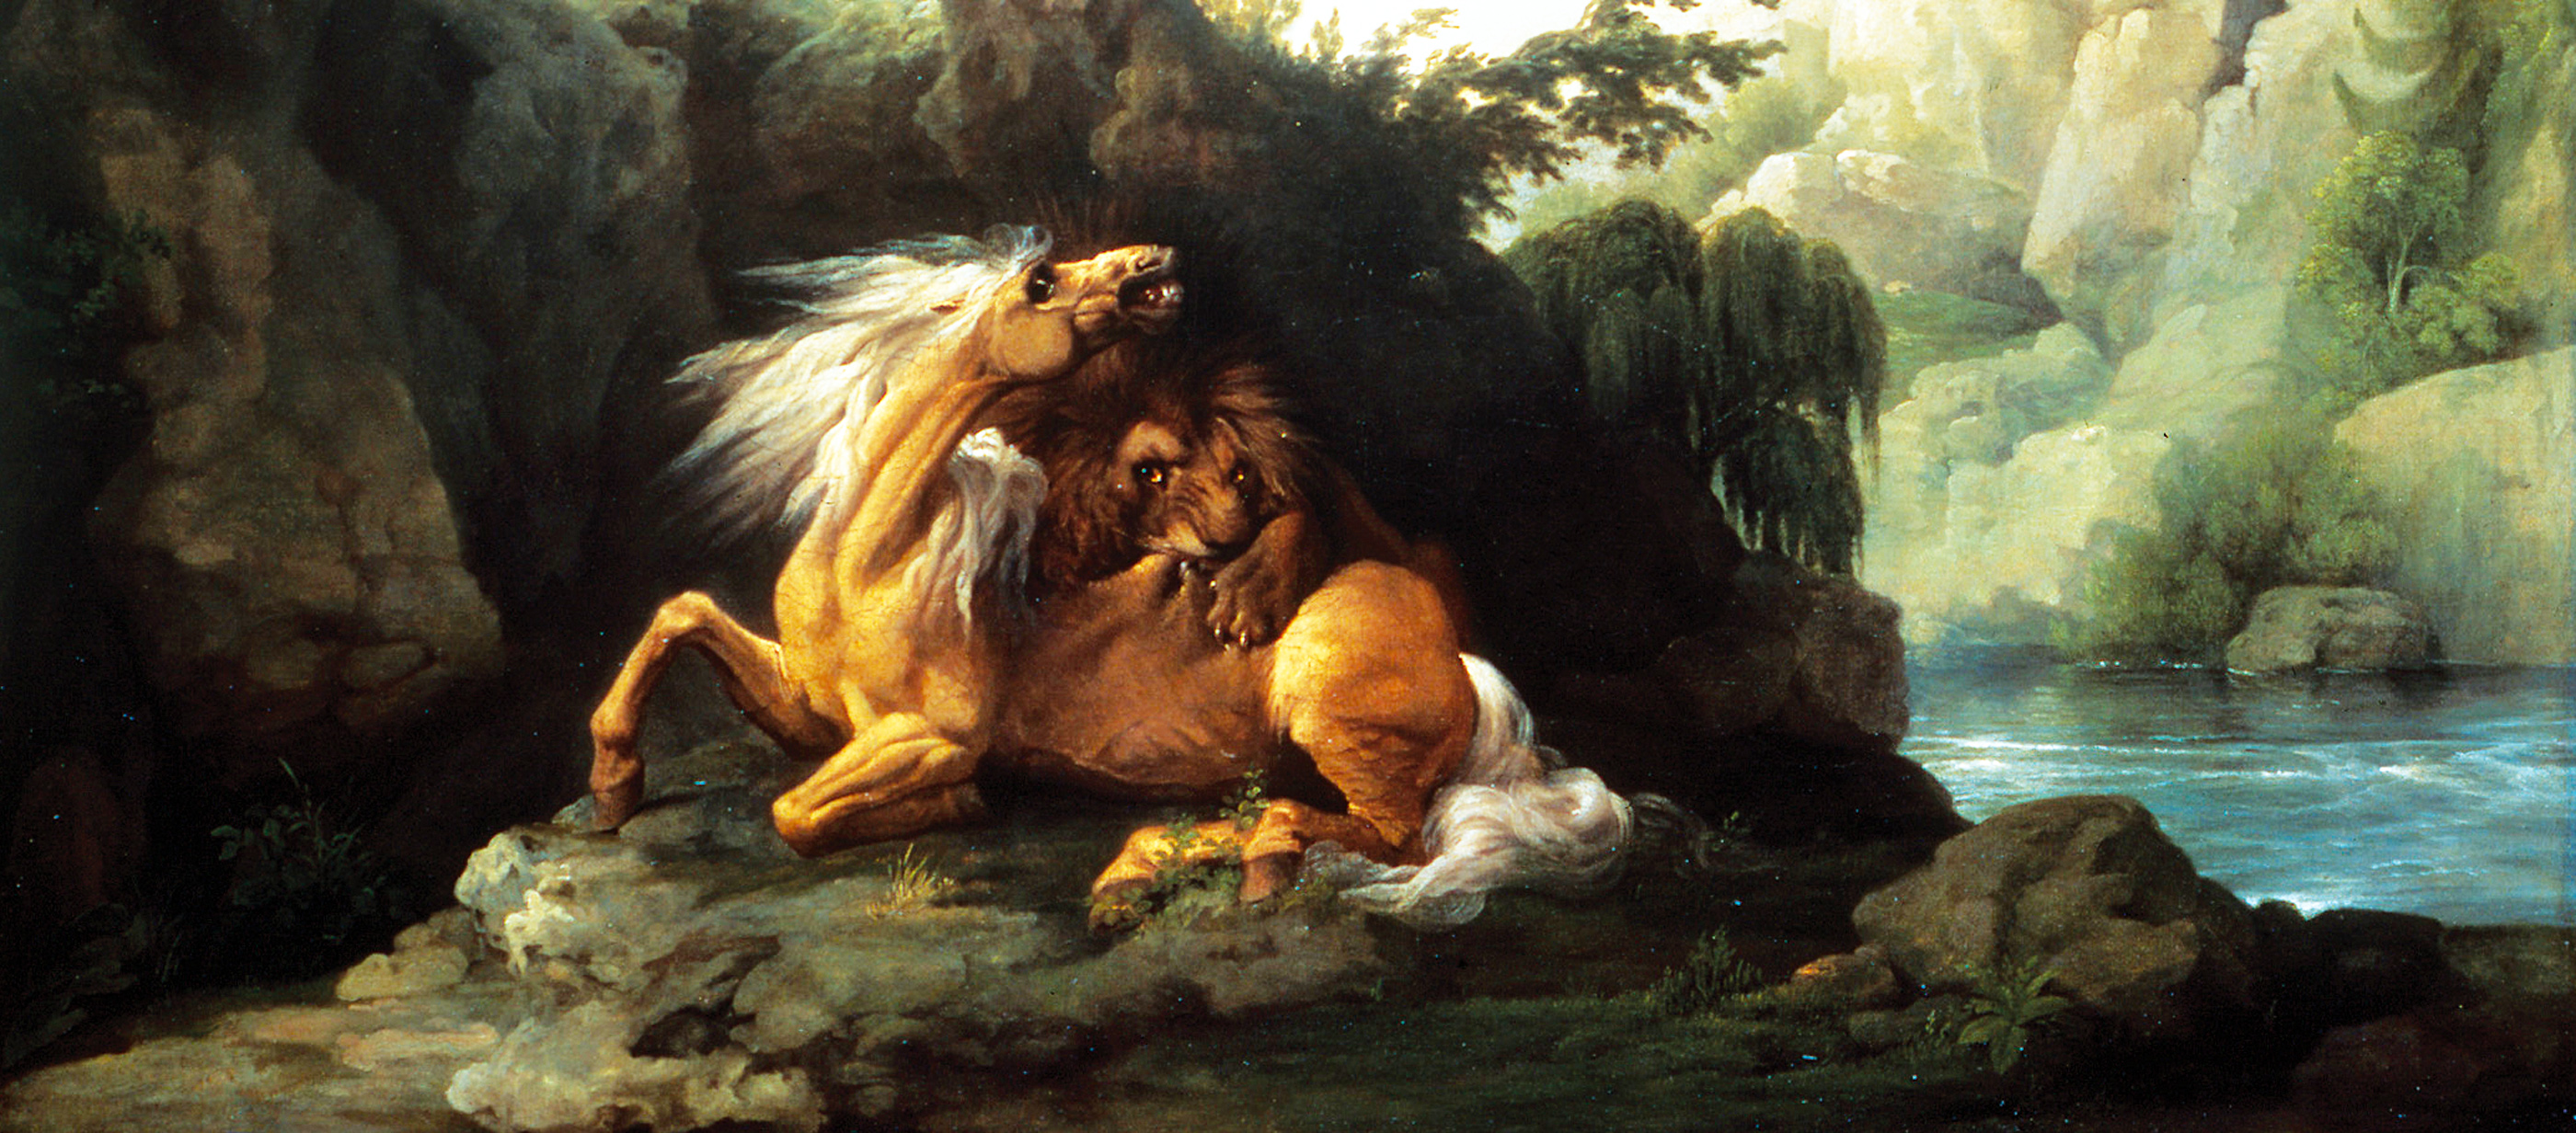 Horse Devoured by a Lion (detail), by George Stubbs, 1763. Tate Britain, London, England.